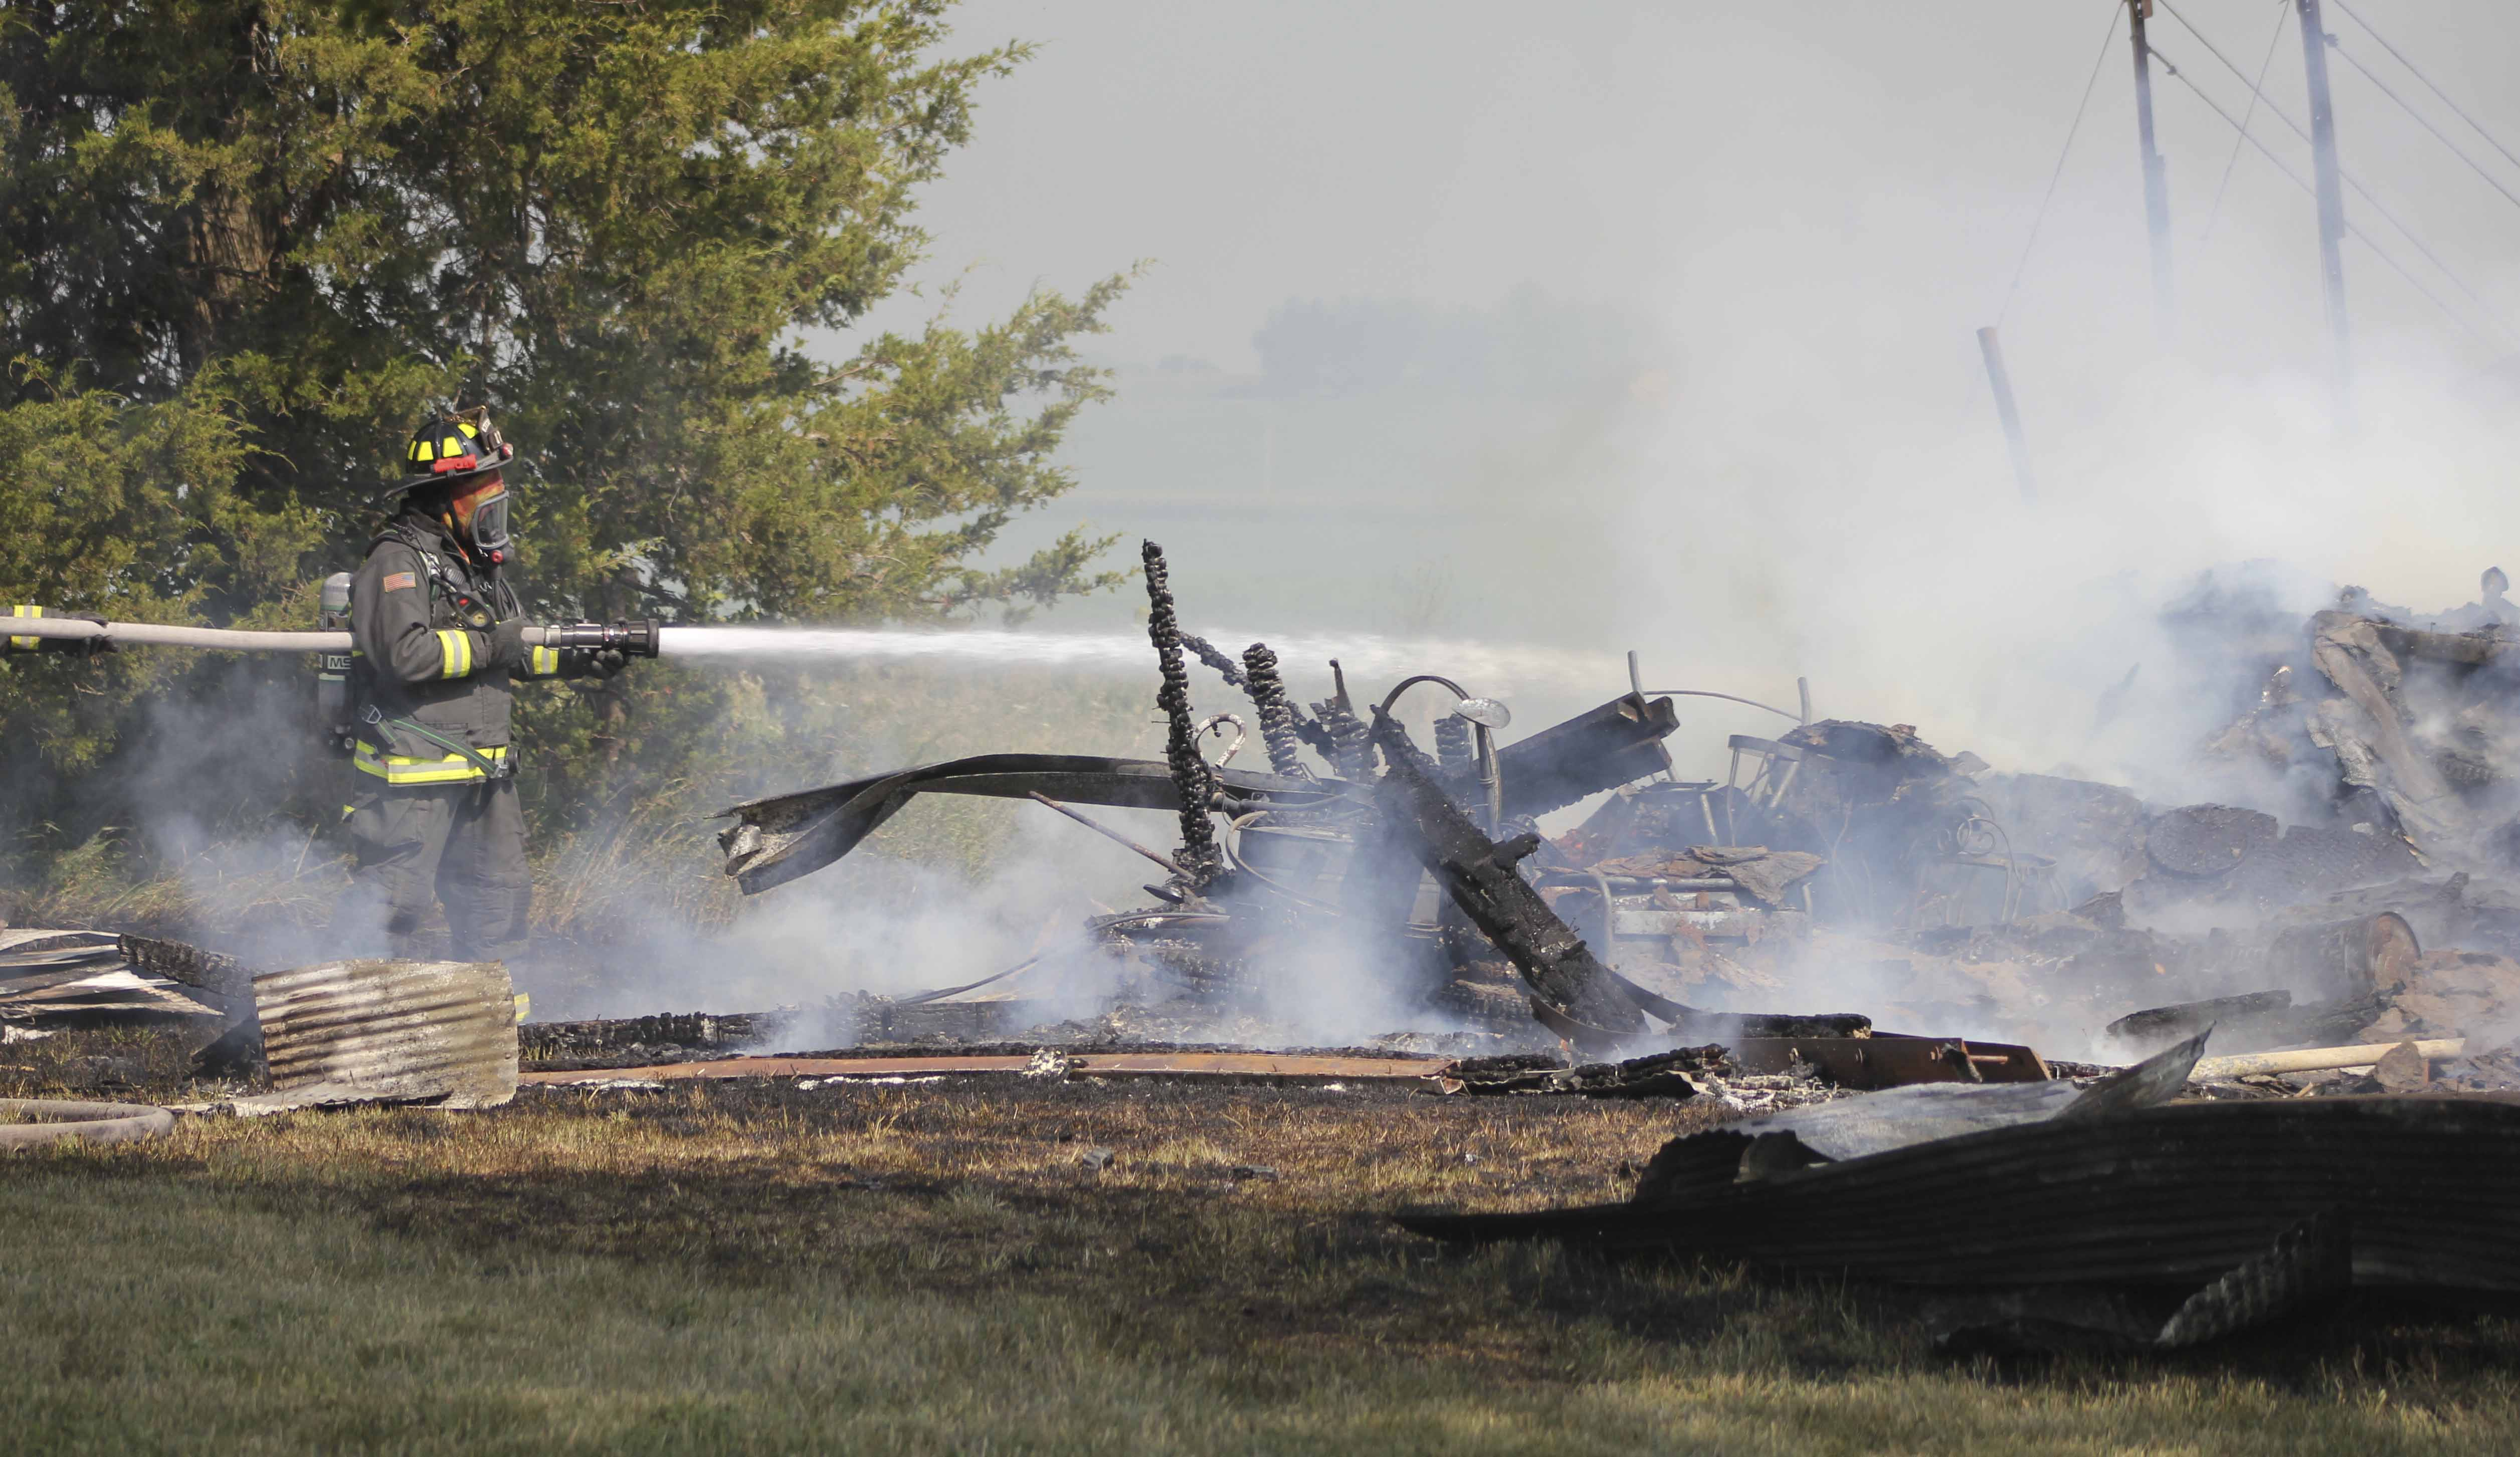 Firefighter Tim Miles works to put out the flames at the Helgens farm. (Photo by Pete Temple)